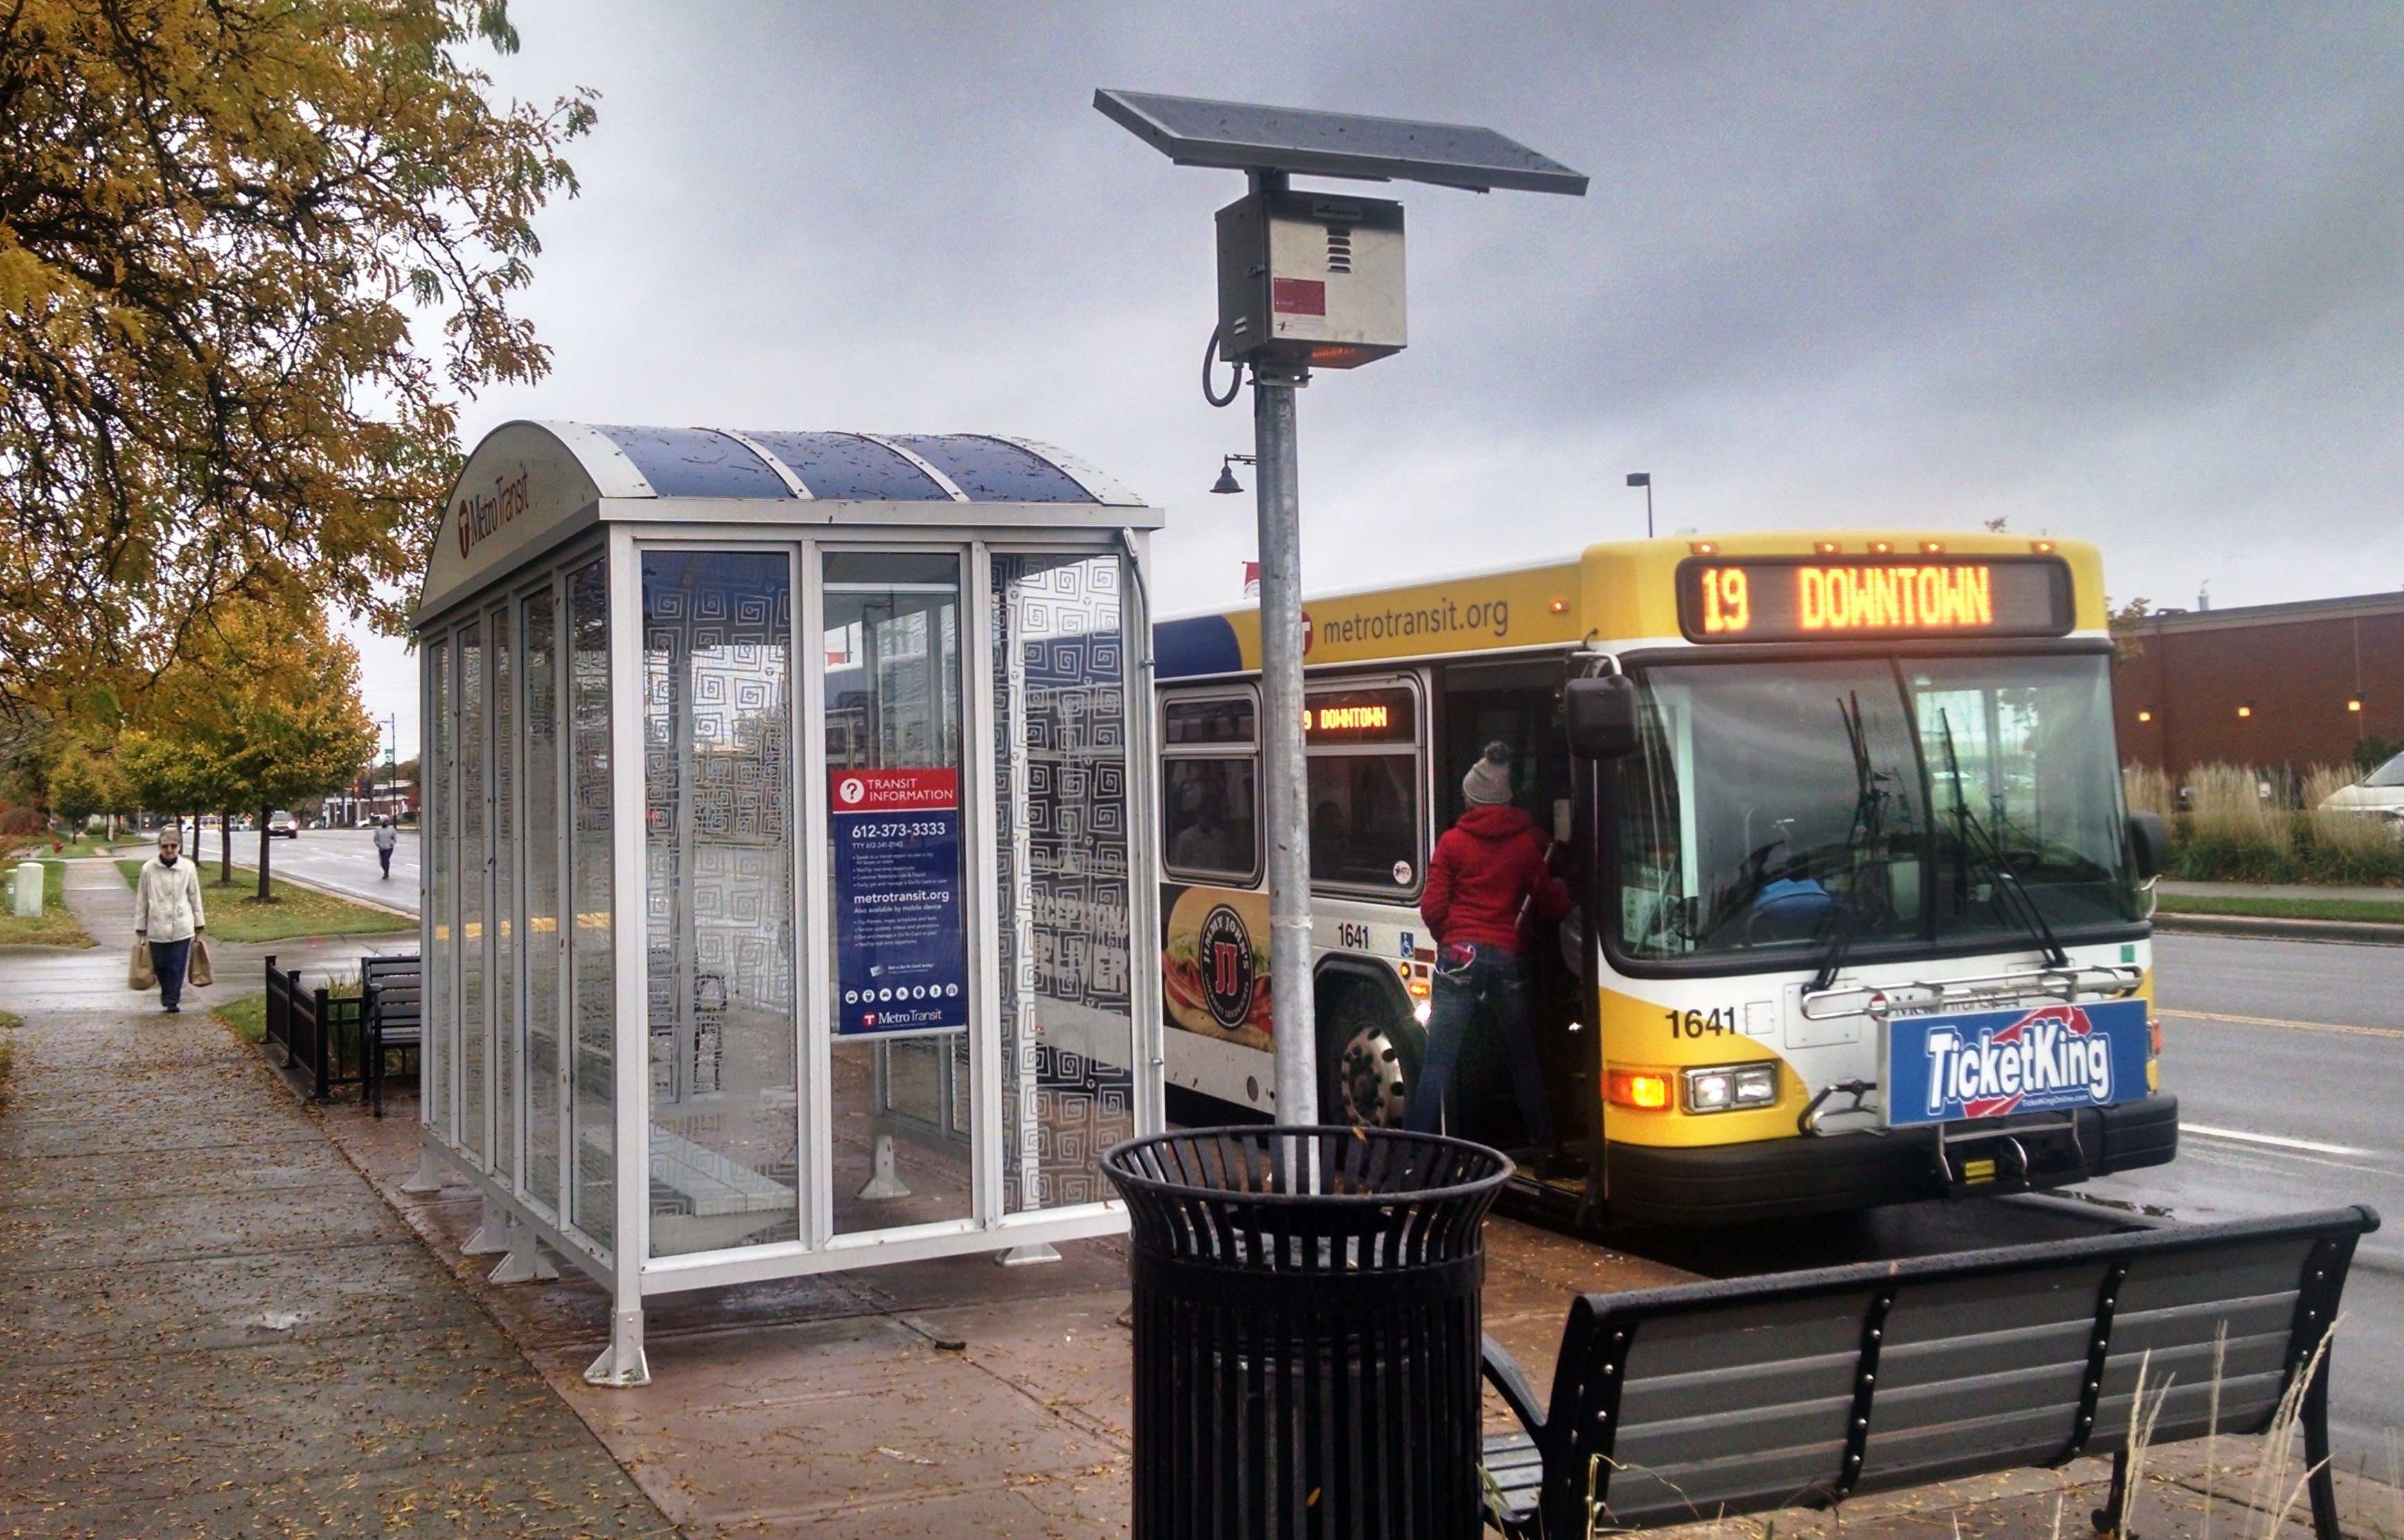 A pole-mounted solar panel is used to provide power for lighting at this Metro Transit bus shelter.